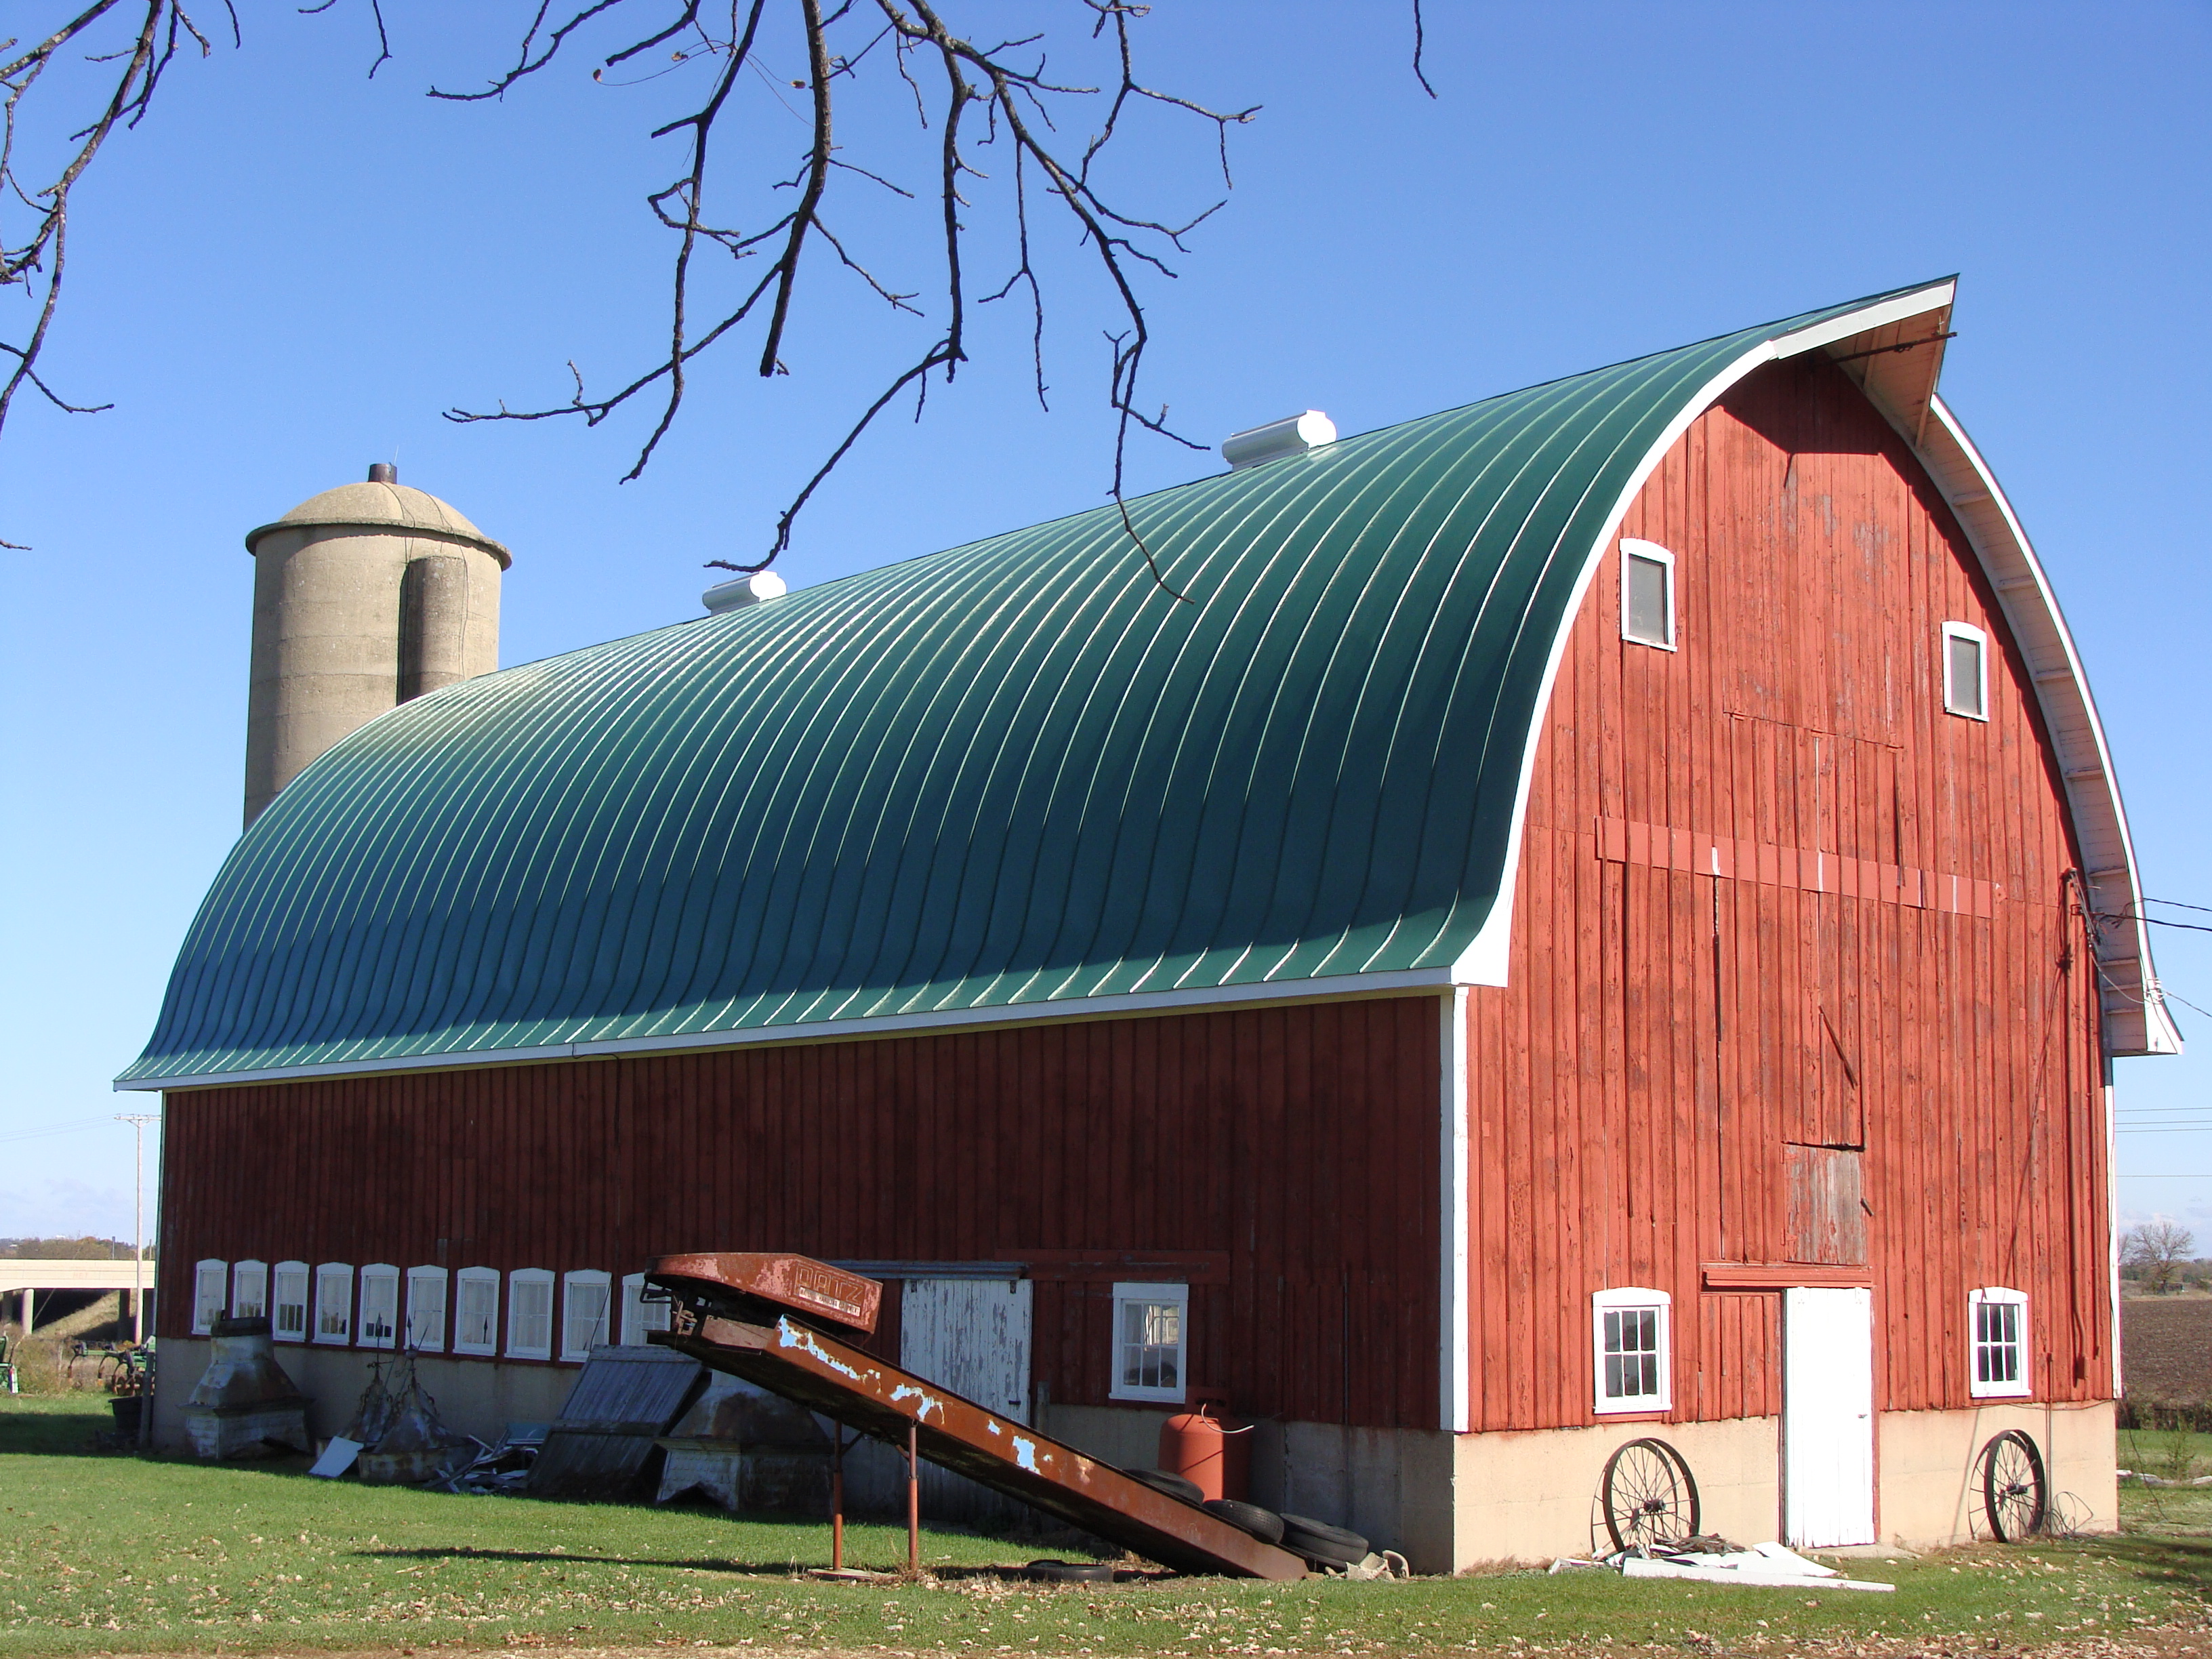 double lock standing seam sheet metal roofing gothic barn agricultural teal green blue culpitt wisconsin illinois iowa minnesota north dakota